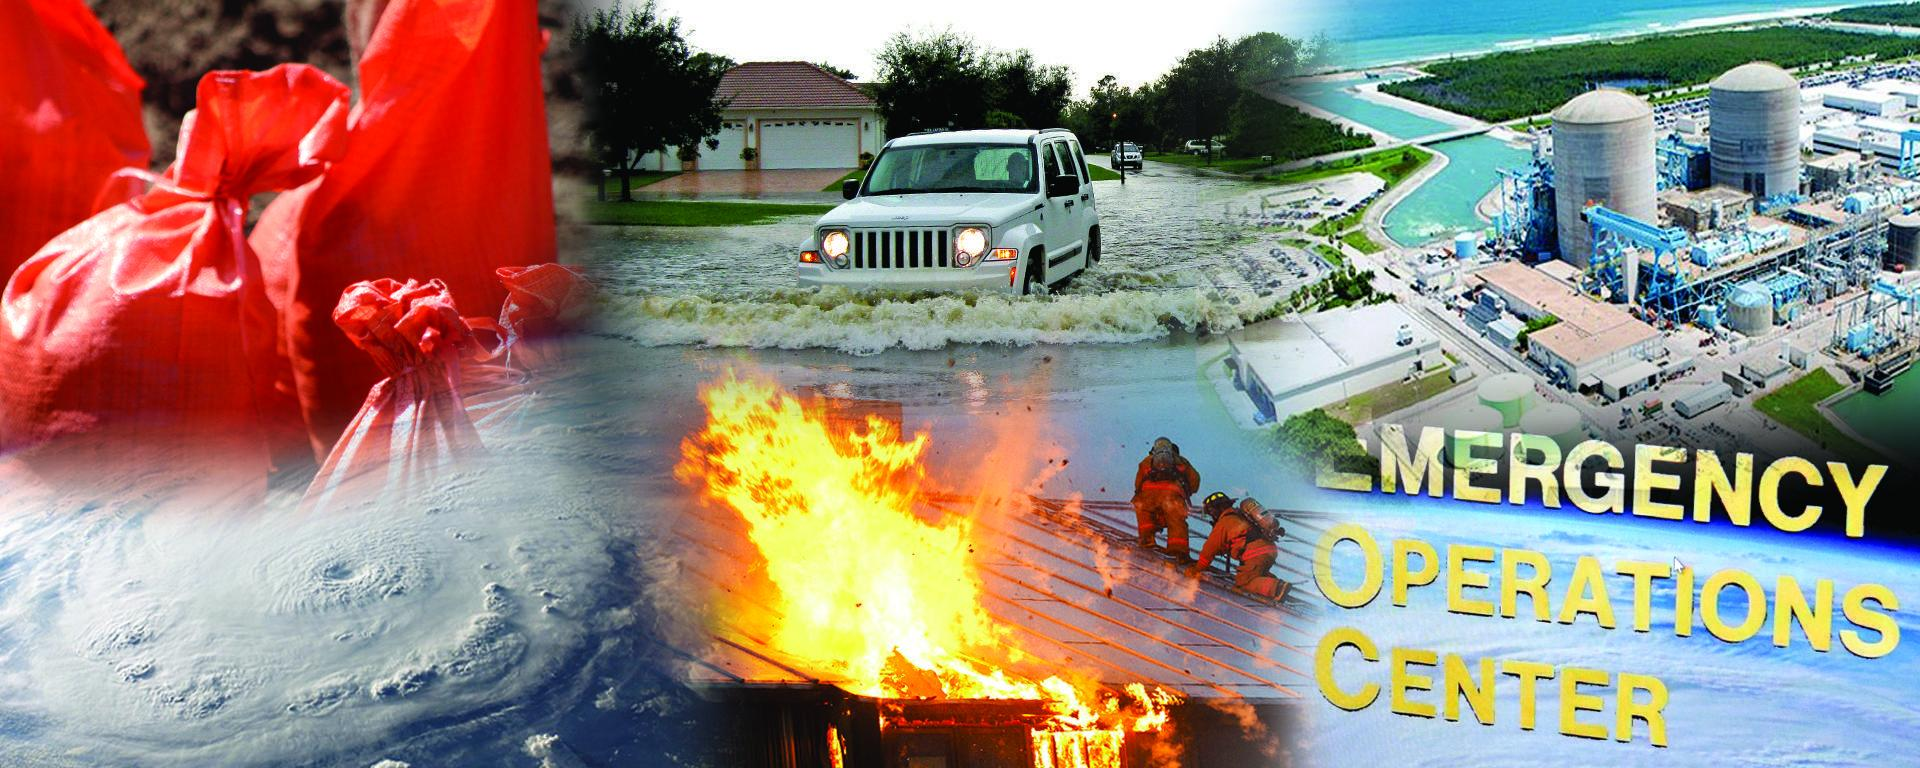 Collage consists of images of sandbags, a hurricane, residential flooding, a house fire, nuclear power plant and emergency management